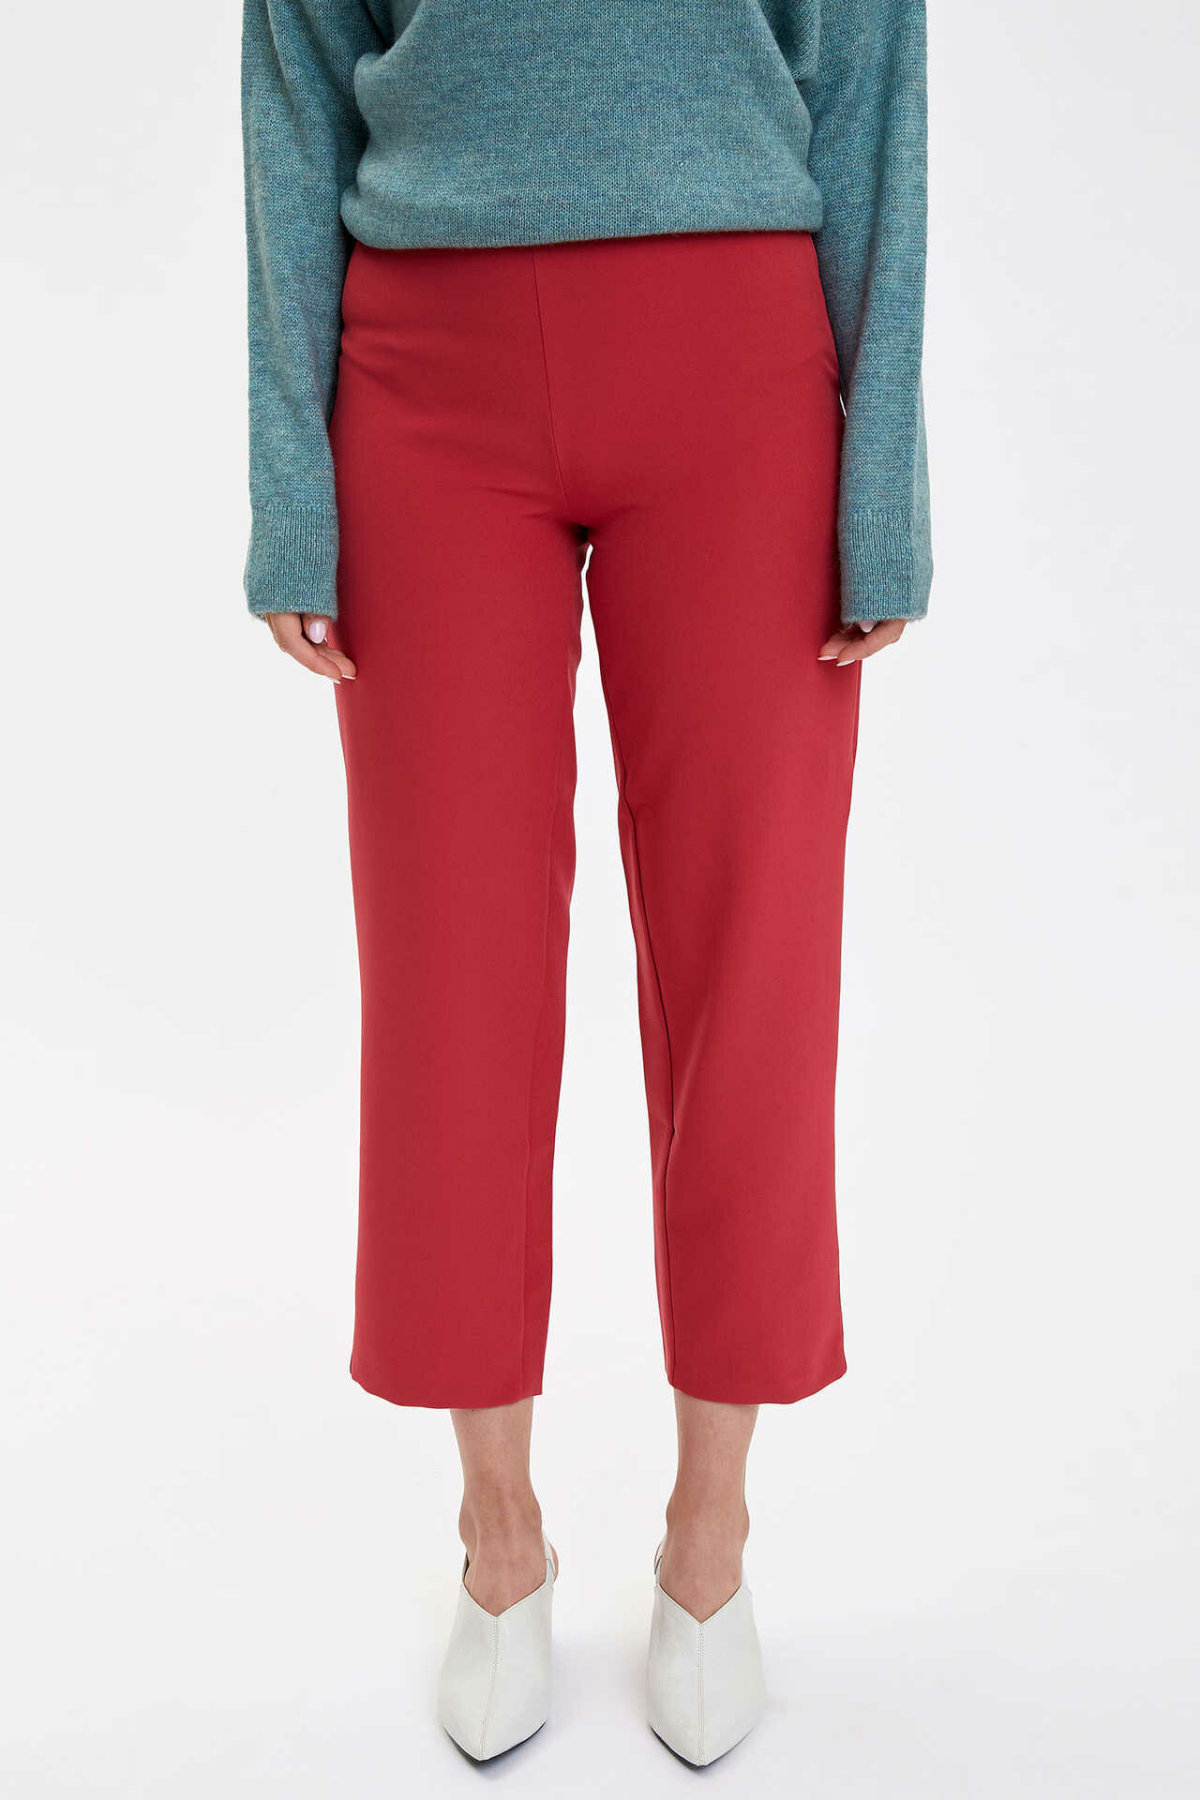 DeFacto Fashion Woman Solid Trousers Casual Straight Loose Pants Mid Waist Leisure Breathable Crop Pant Female New - M7330AZ19AU